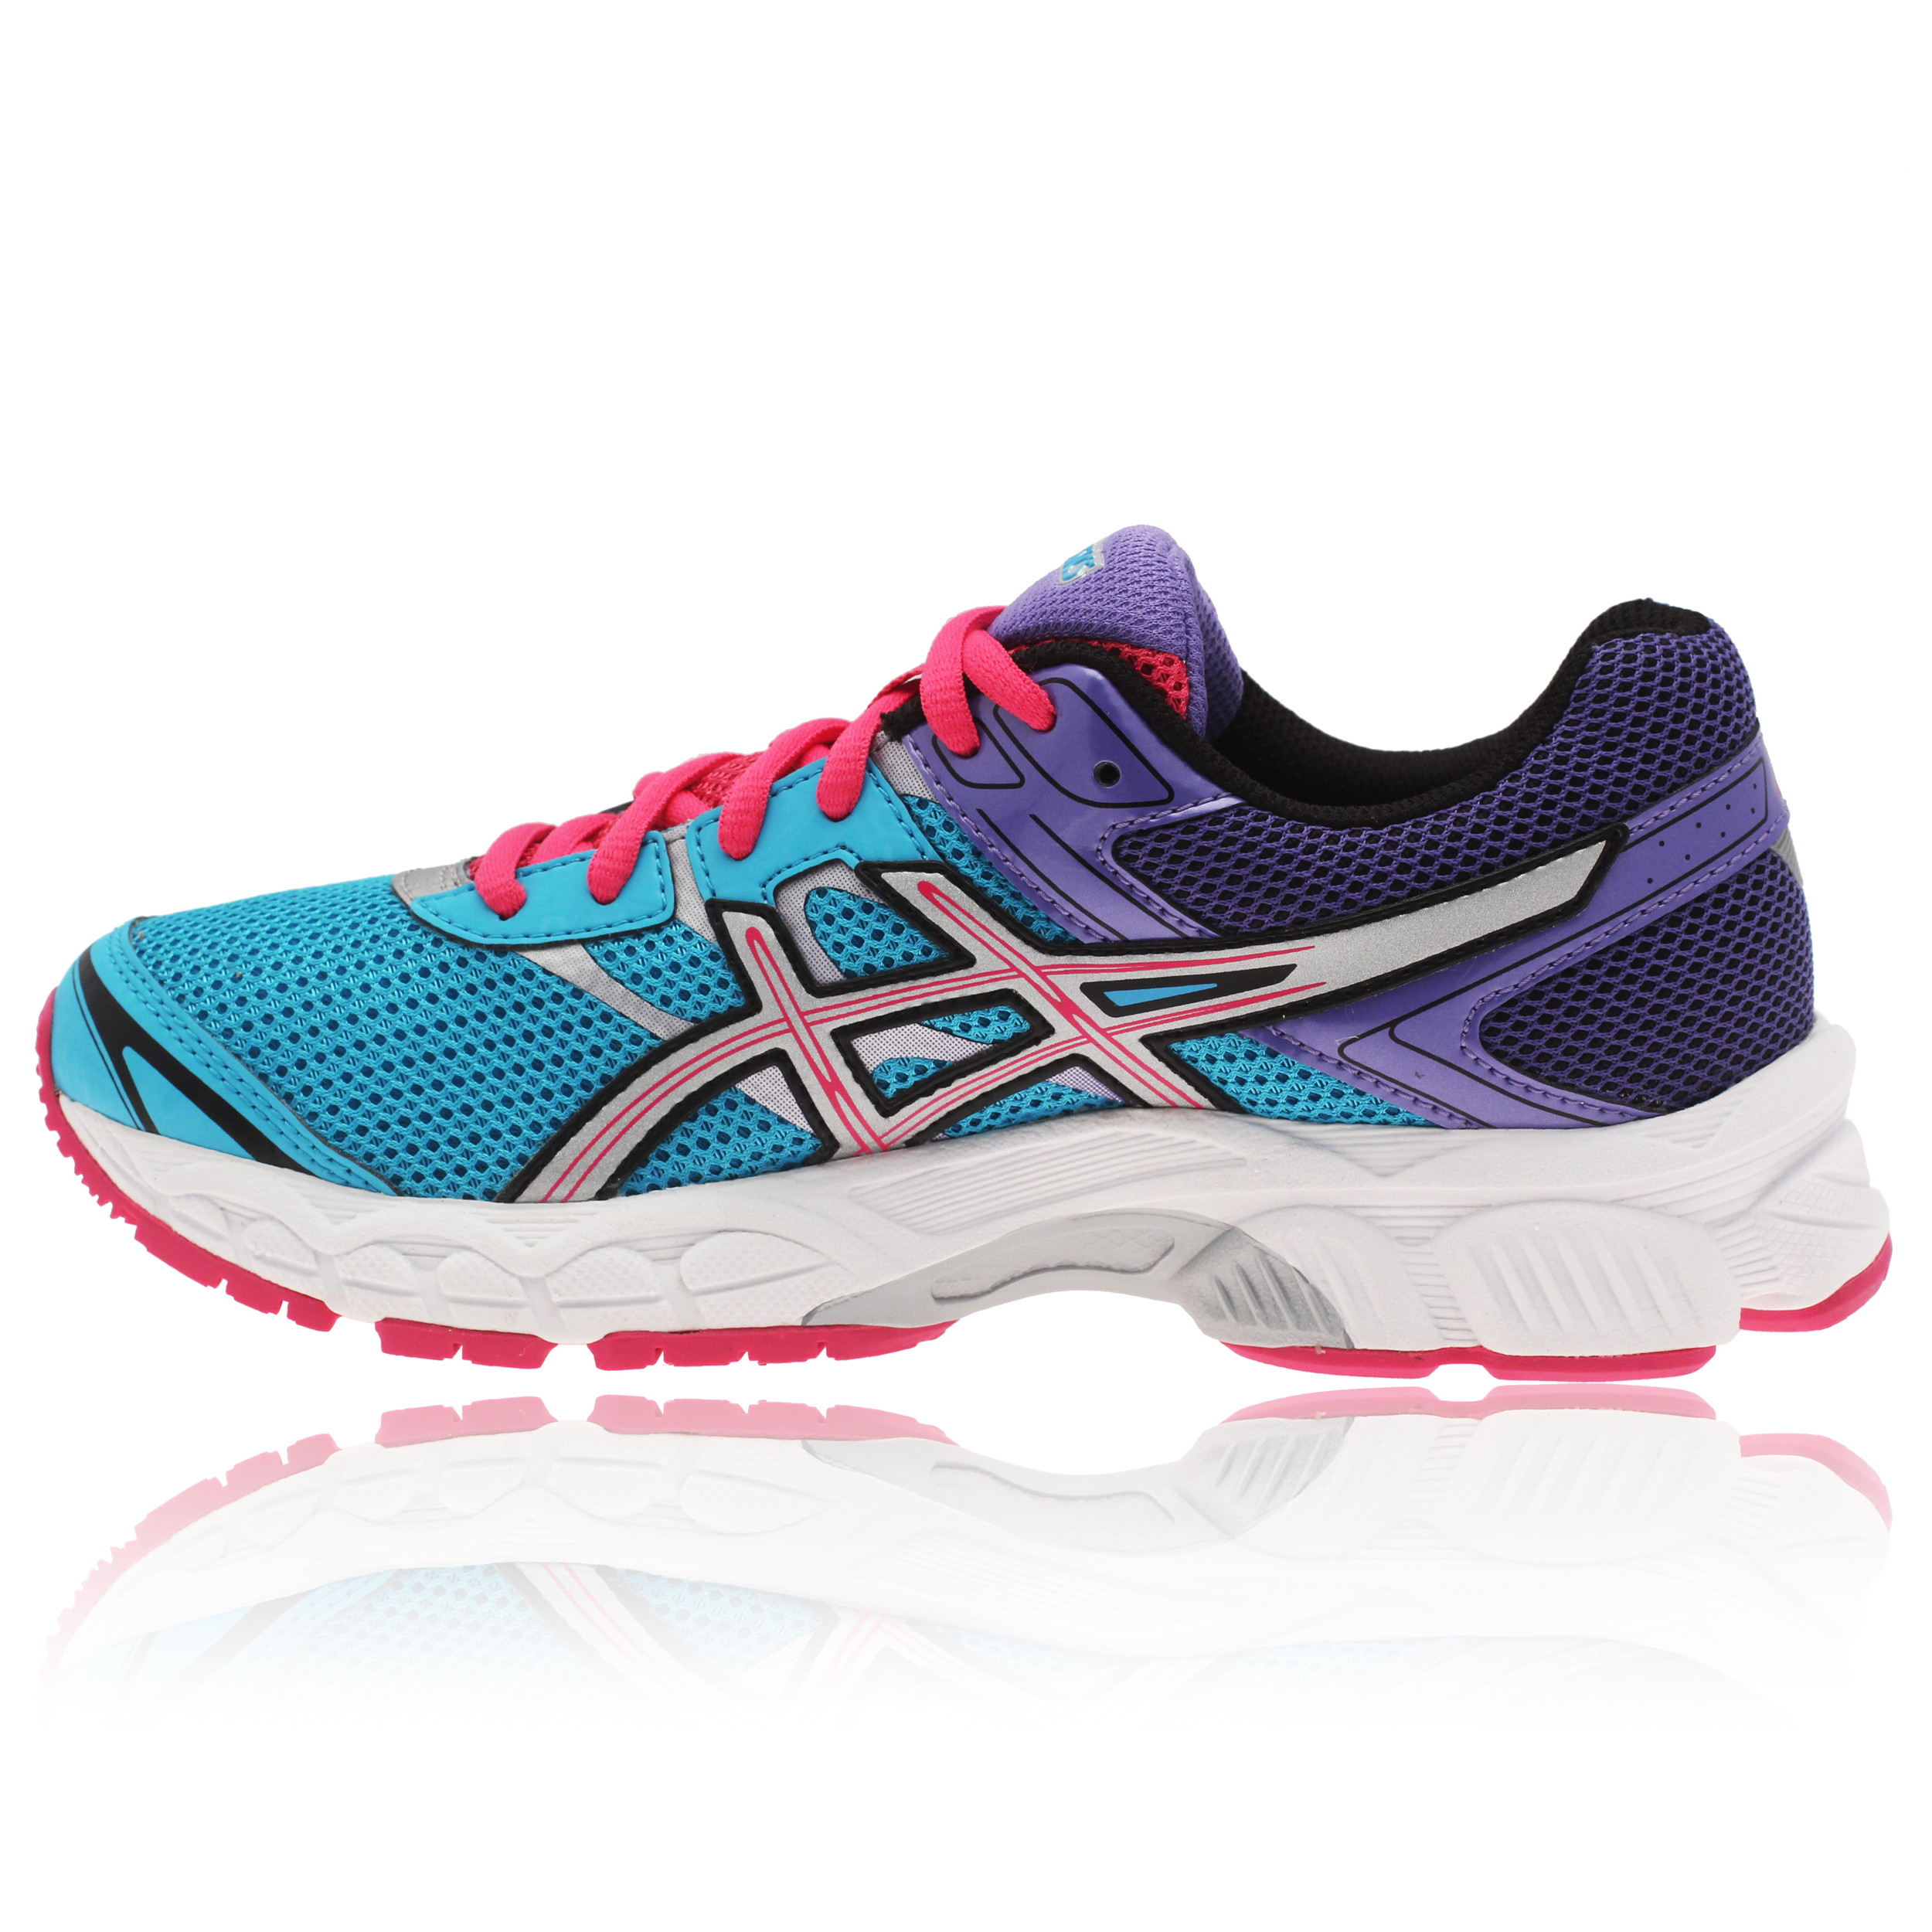 asics gel cumulus 16 running shoes 28 images asics gel cumulus 16 mens running shoes. Black Bedroom Furniture Sets. Home Design Ideas